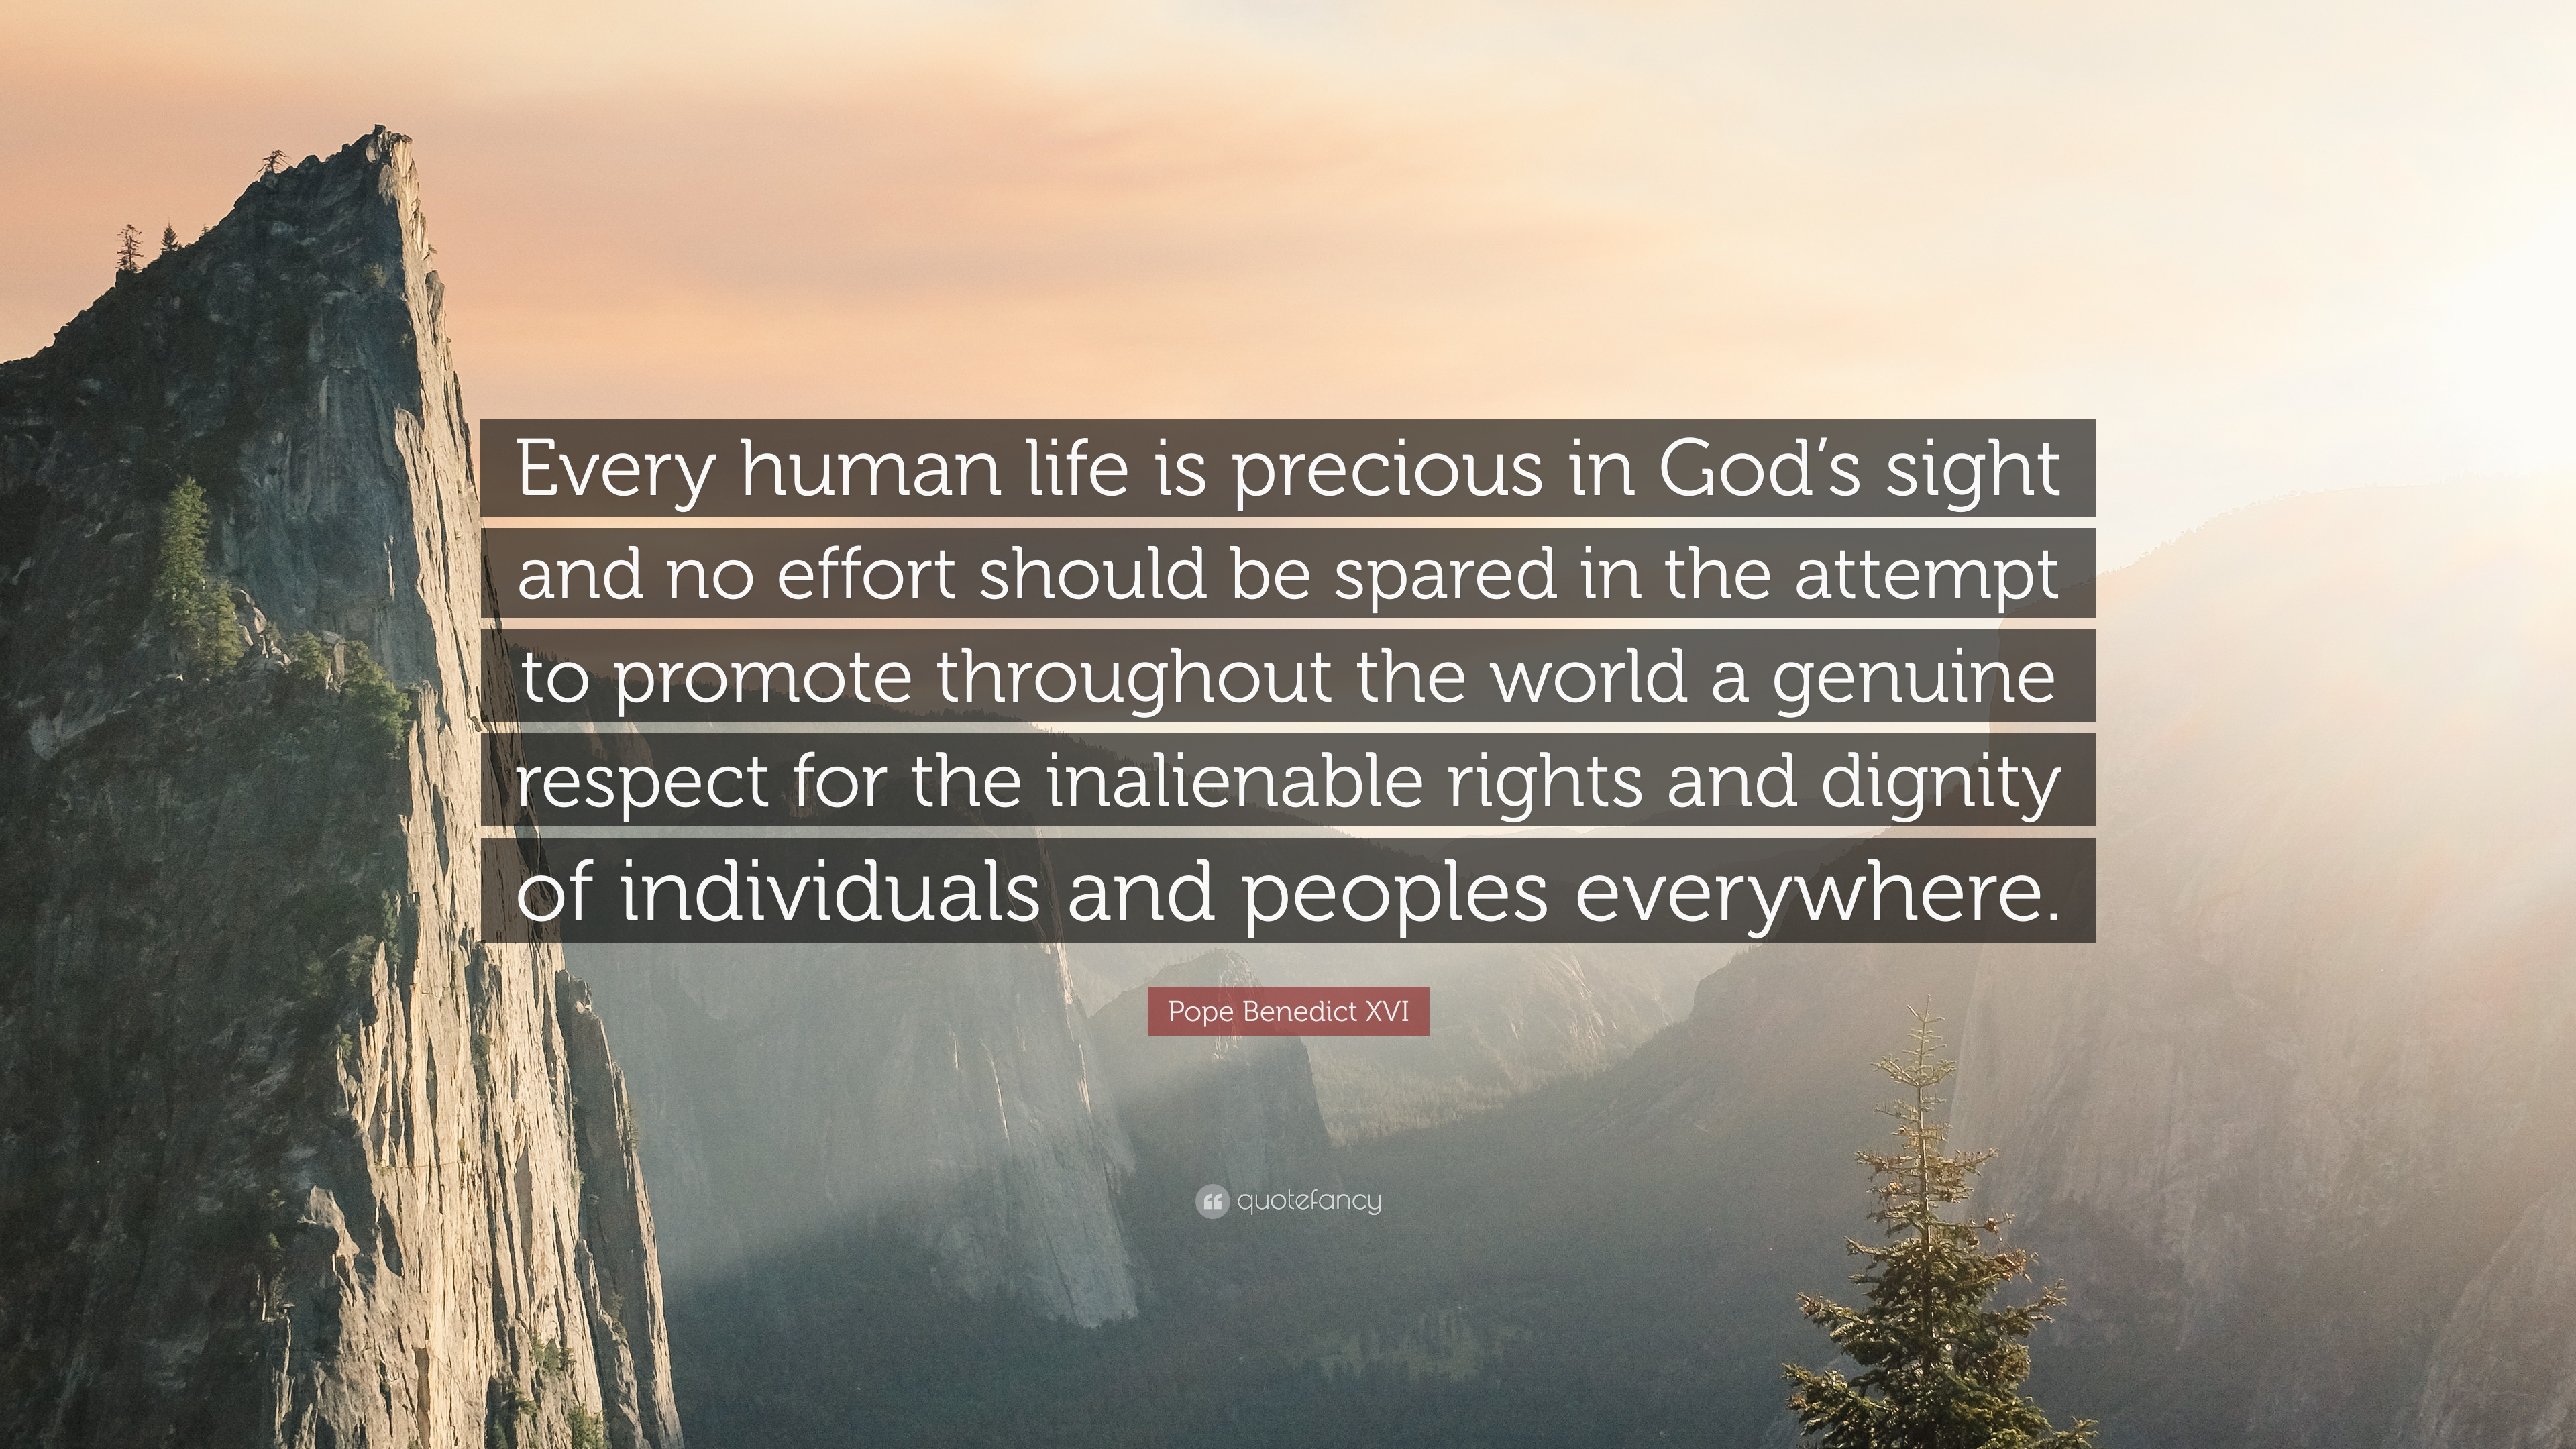 Pope Benedict Xvi Quote Every Human Life Is Precious In Gods